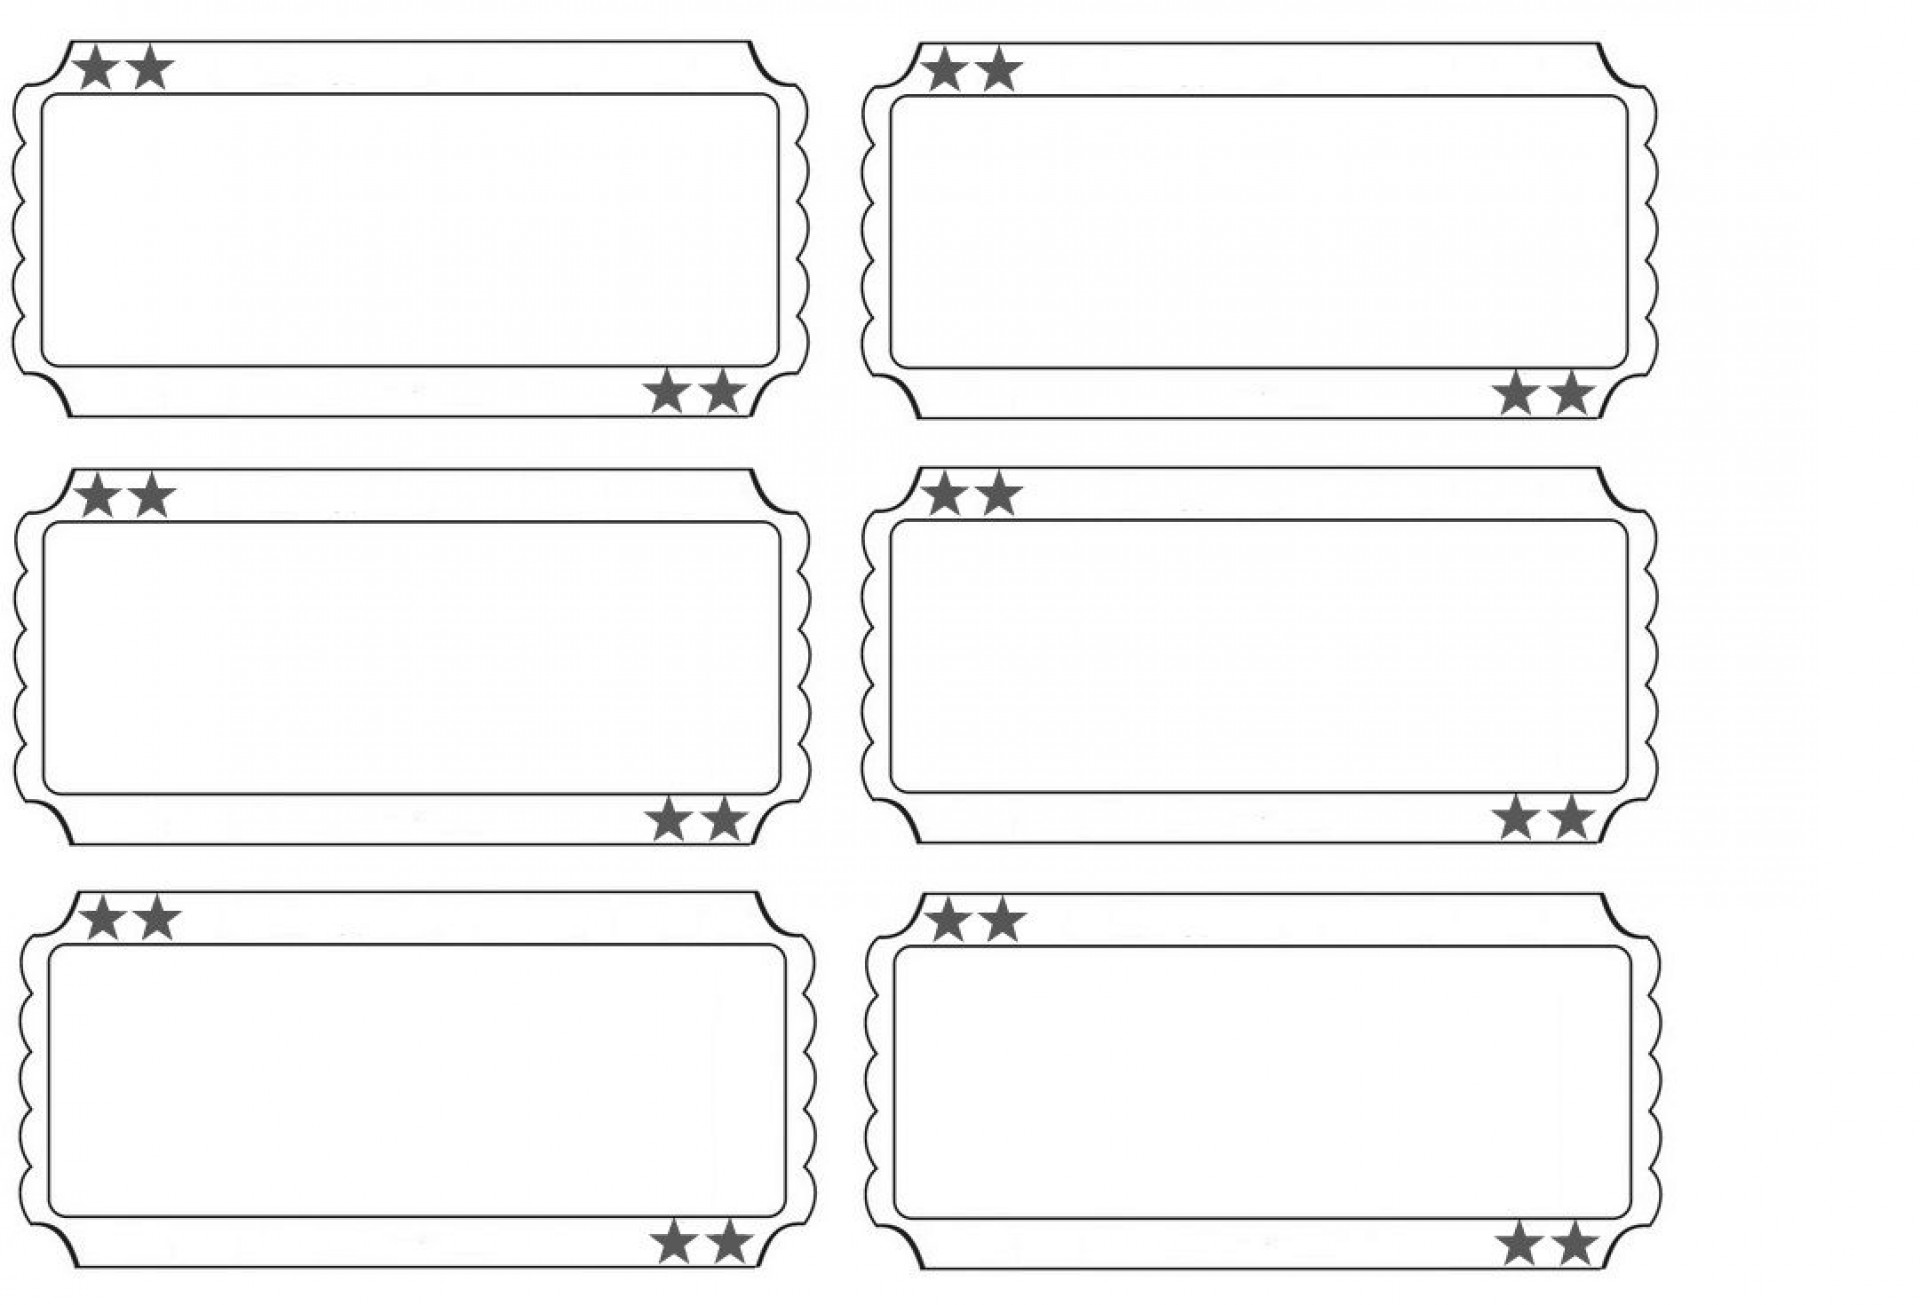 001 Staggering Free Printable Ticket Template Sample  Editable Airline Christma For Gift1920